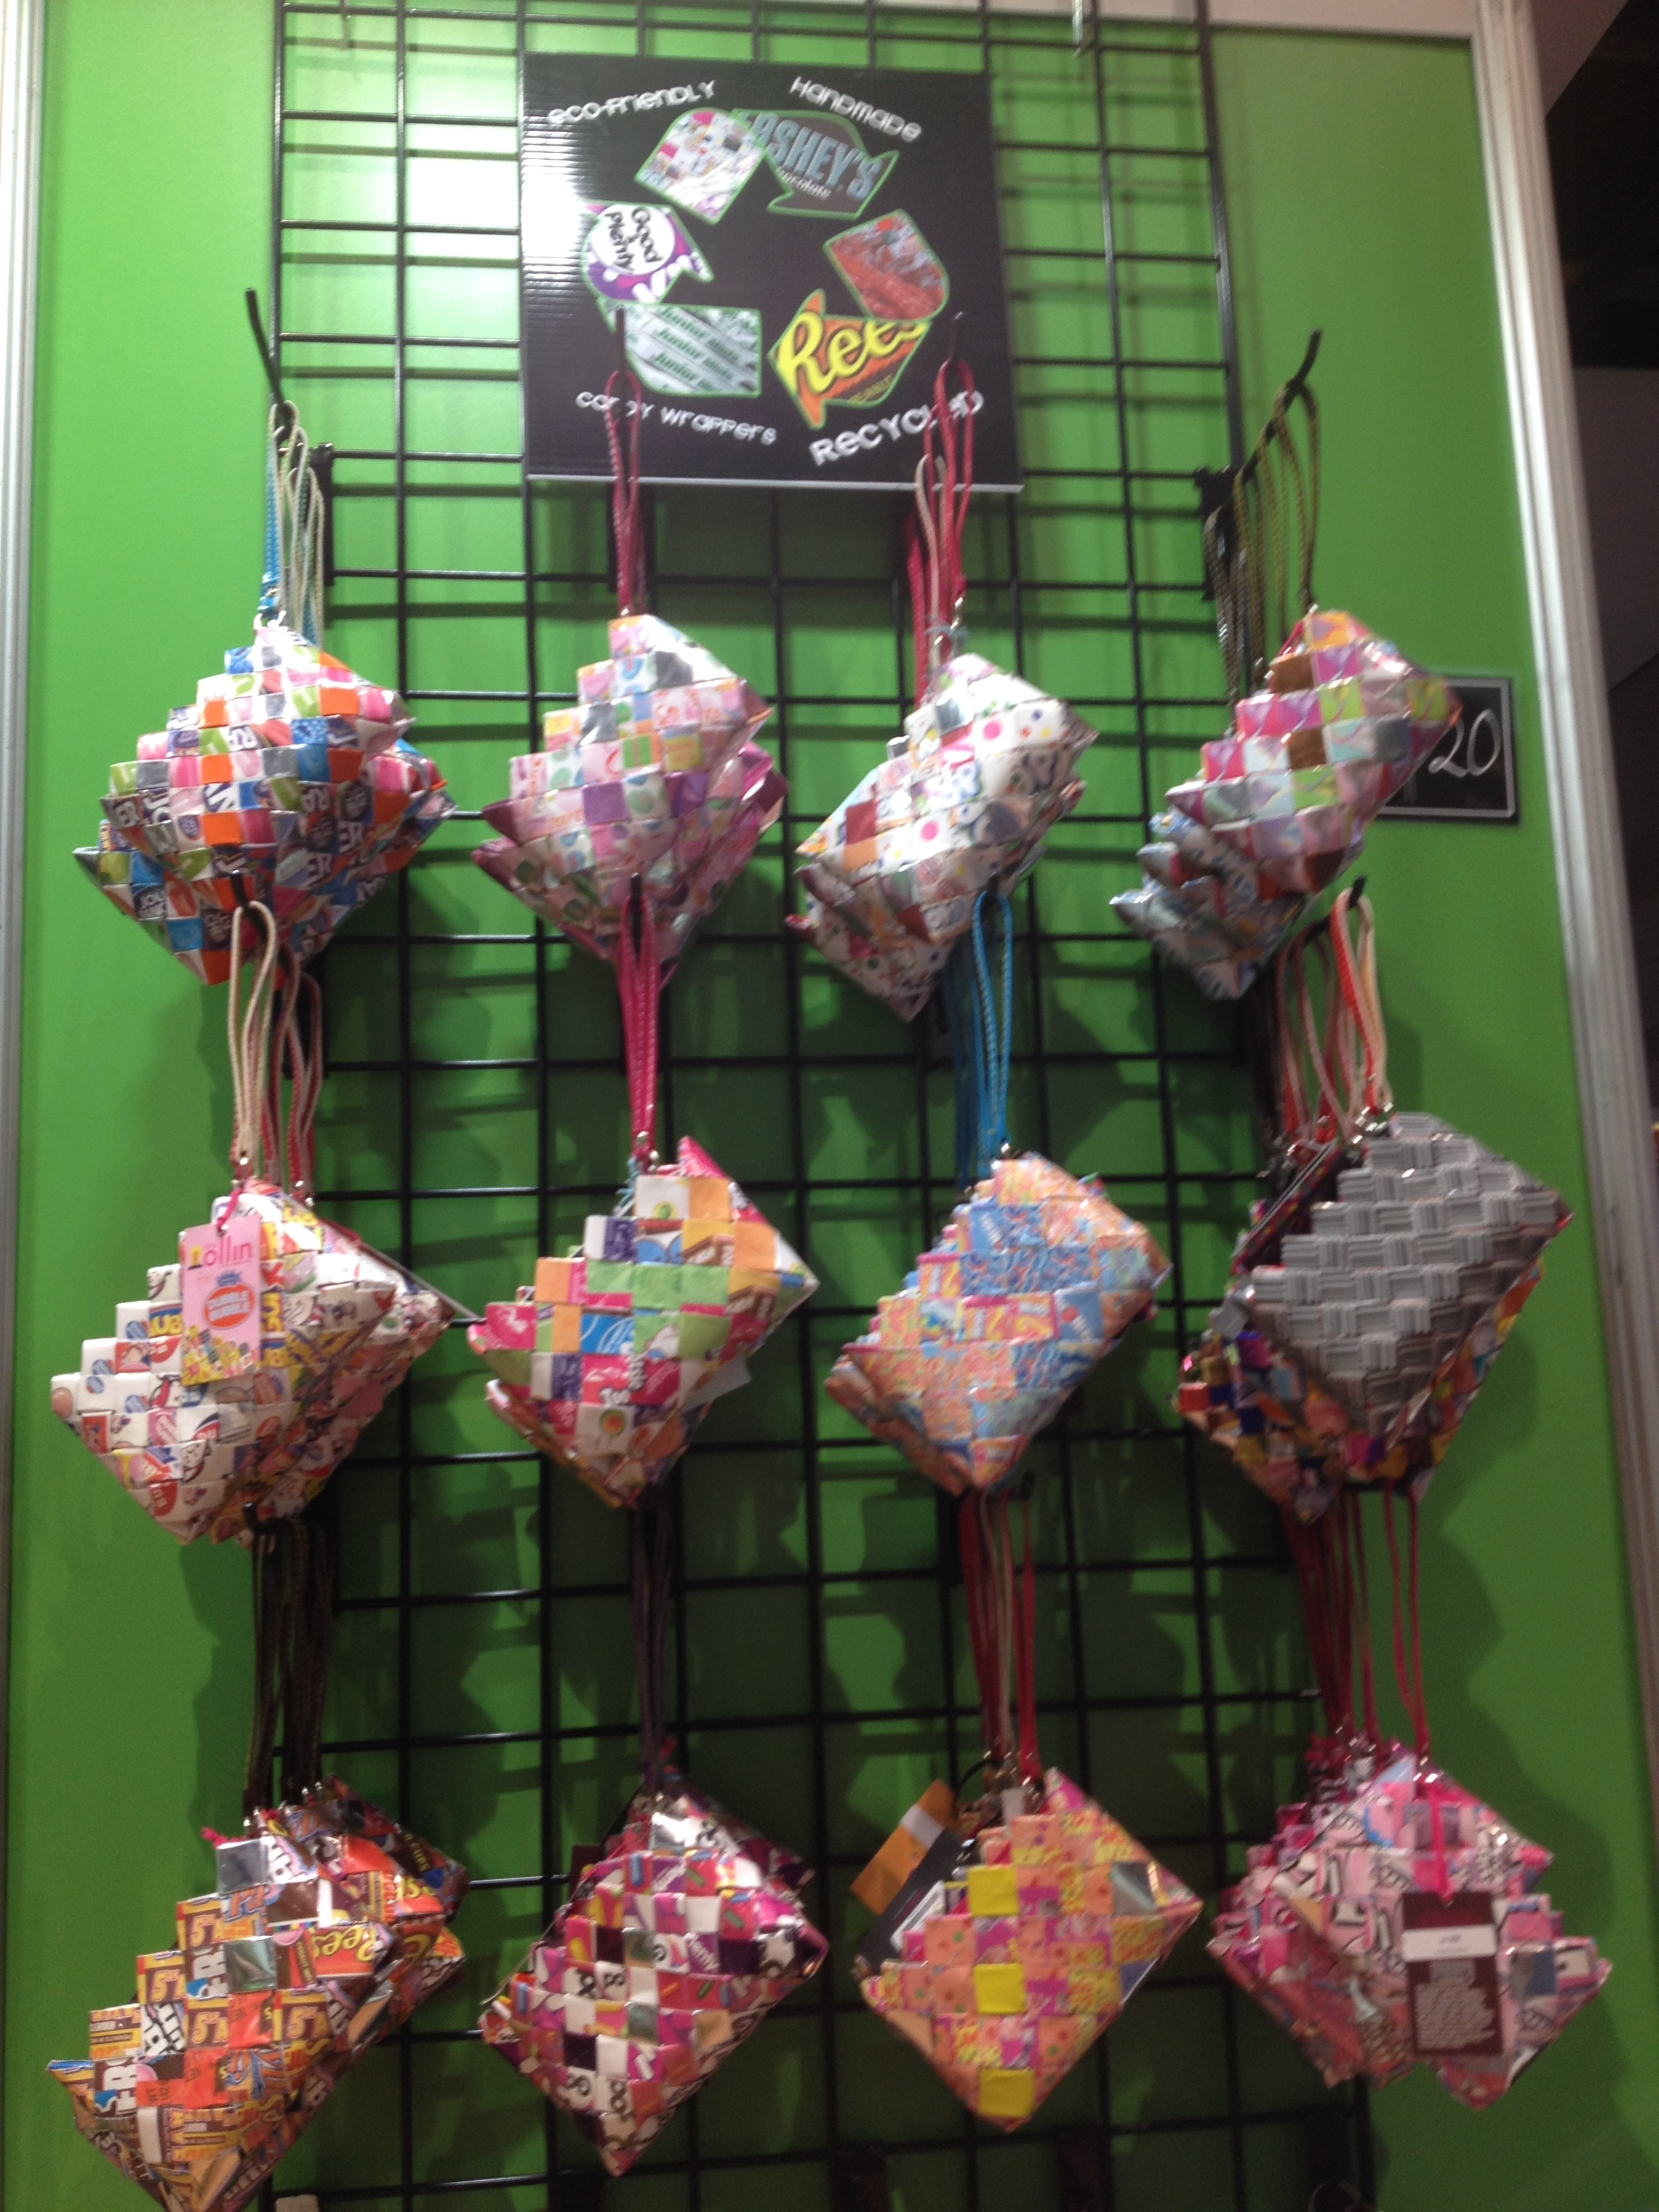 Inspiring Kitchen Top 10 Observations from the Sweets and Snacks Show